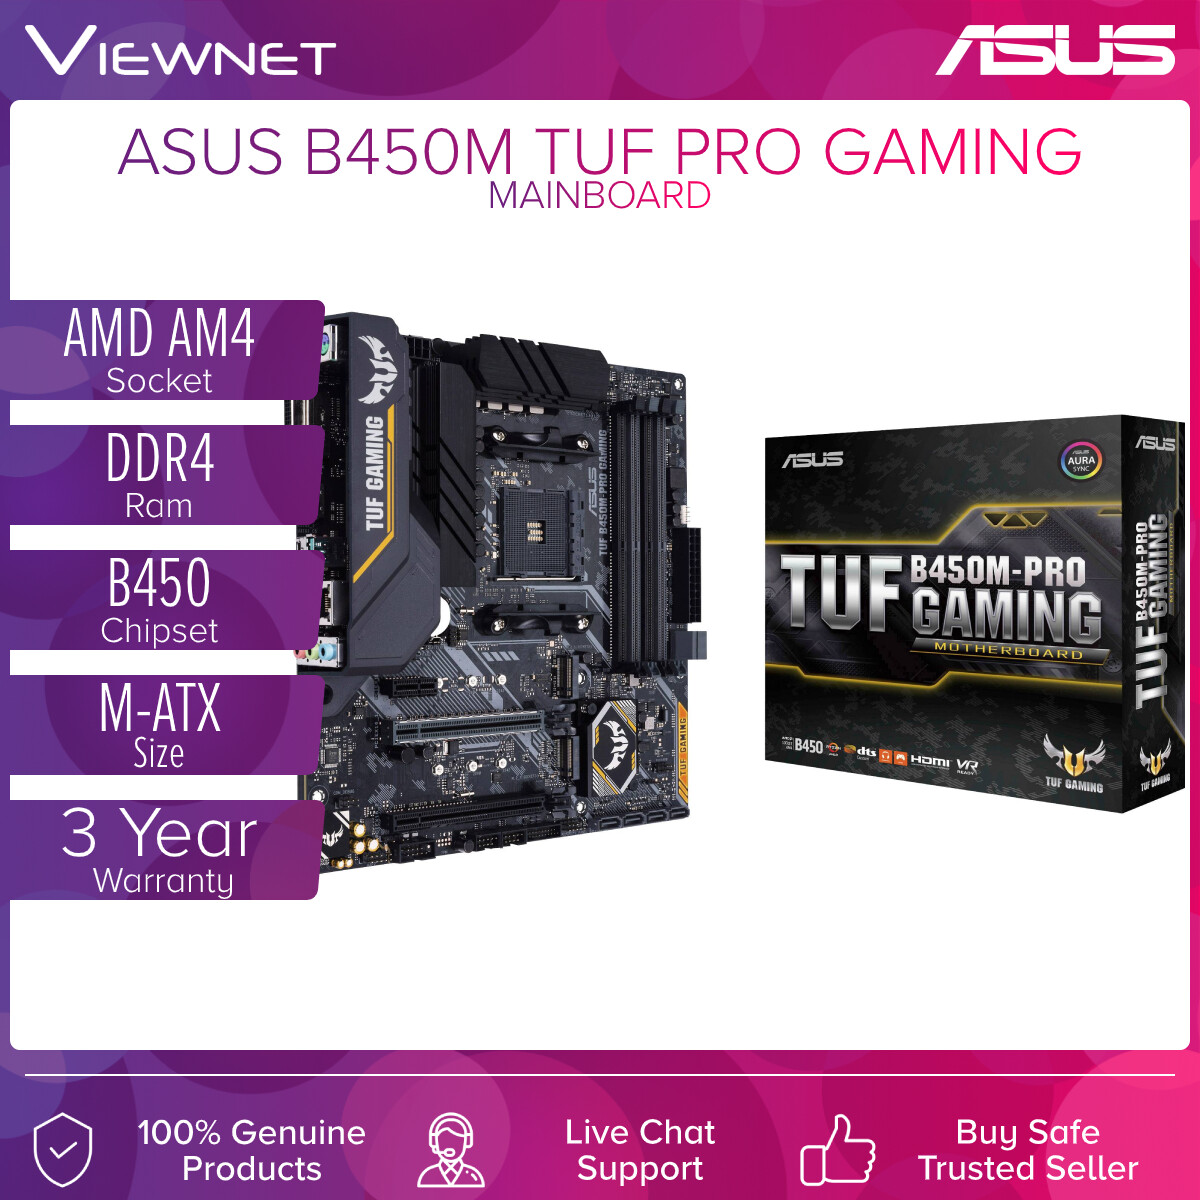 ASUS MAINBOARD AMD AM4 B450M TUF PRO GAMING